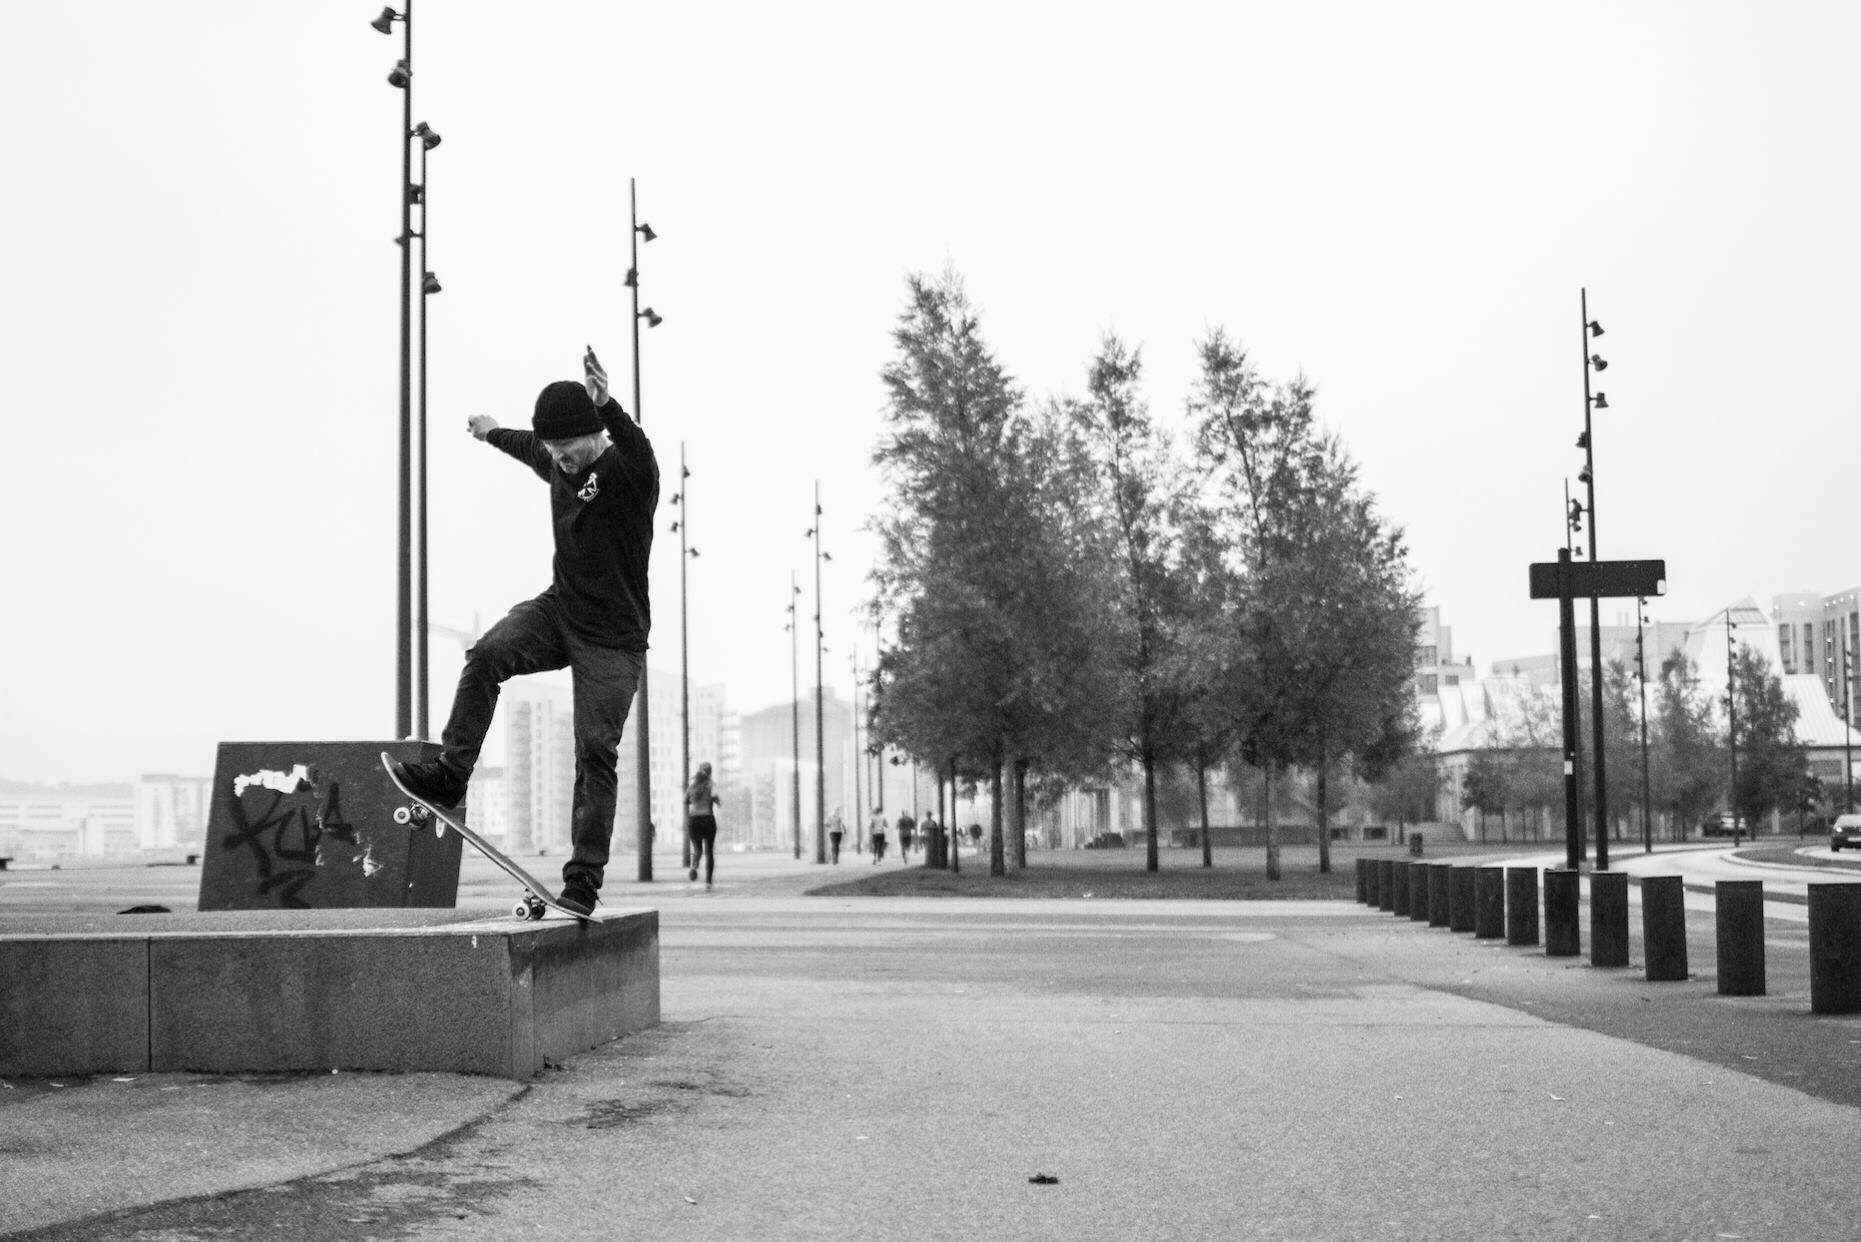 Kim Stær, Nose blunt slide, Photo: unknown credits coming